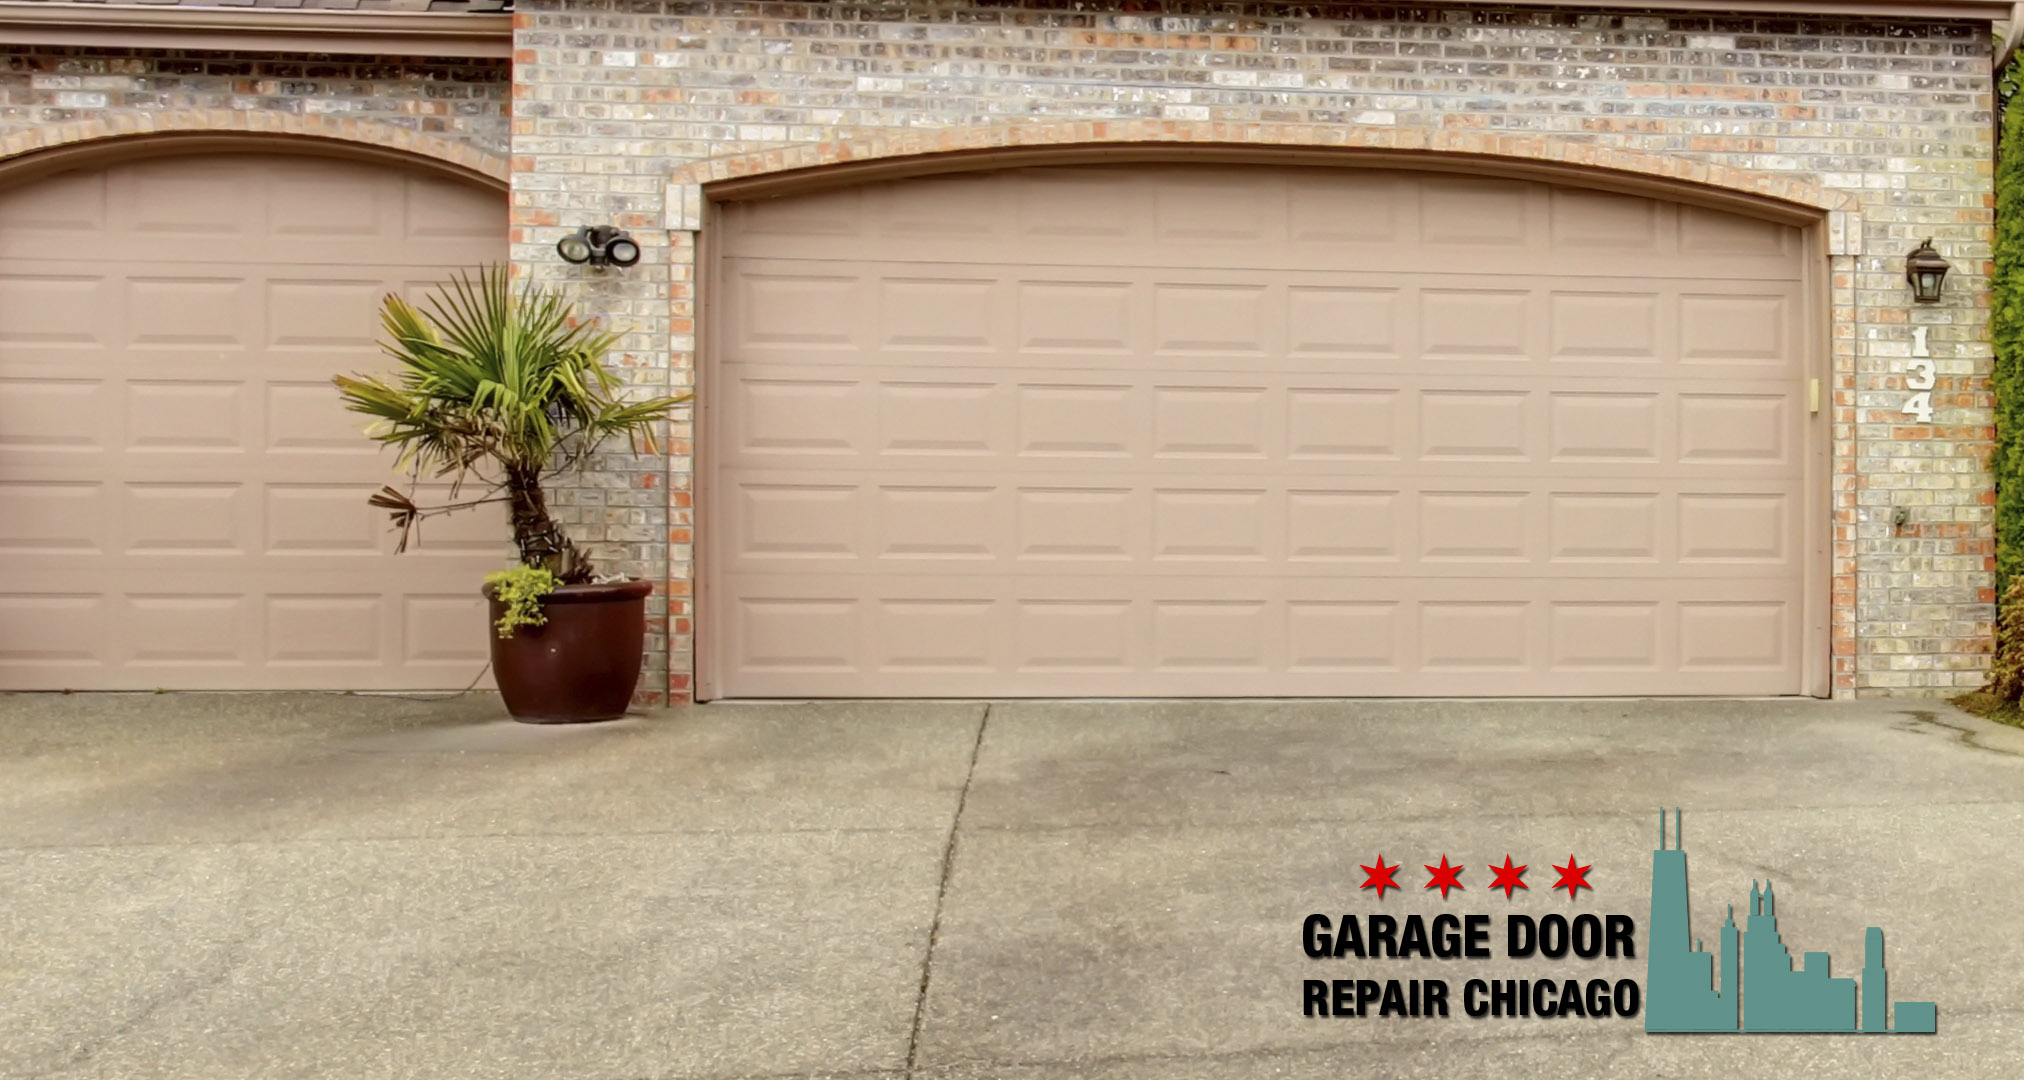 (773) 312 3378 Chicago Garage Door Repair   A Local Chicago Garage Door  Company Providing Garage Door Repair Services For The Entire Chicago Area